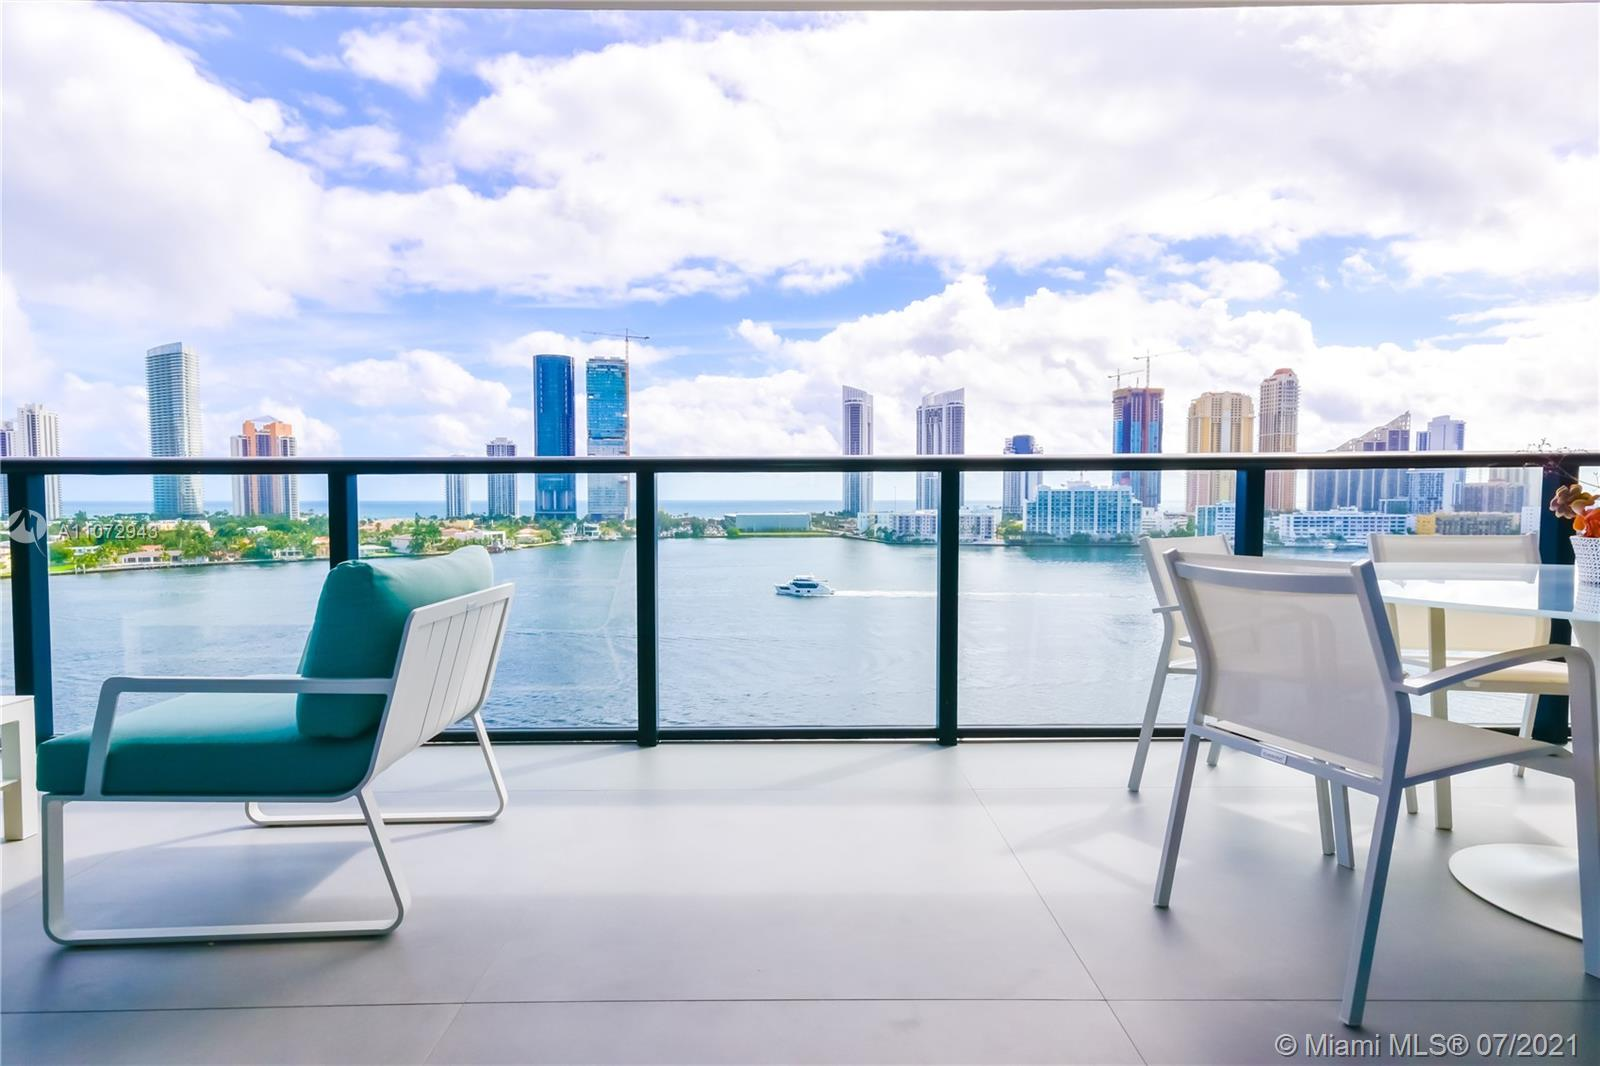 Impressive and unique large unit at PRIVE. A magnificent complex in an 8-acre private island in Aventura. This gorgeous unit features a flow-through lay out w/3 bedrooms + den/4,5 baths & breathtaking views to Bay/Ocean from every window/10'-foot floor -to -ceiling glass windows & deep terraces with barbecue . European grey Italian porcelain 48 x 48 floor, sound system .Has a built storage room, high end custom made walk-in closets,. Private elevator & modern European Kitchen. Amenities include: Gym/Spa, large pool deck with East/West views;2 pools & pool bar service, restaurant/cafe on site; entertainments room, cigar room, wine room, tennis courts, boat dock, children's playground & game room and much more. 3 assigned parking spaces.